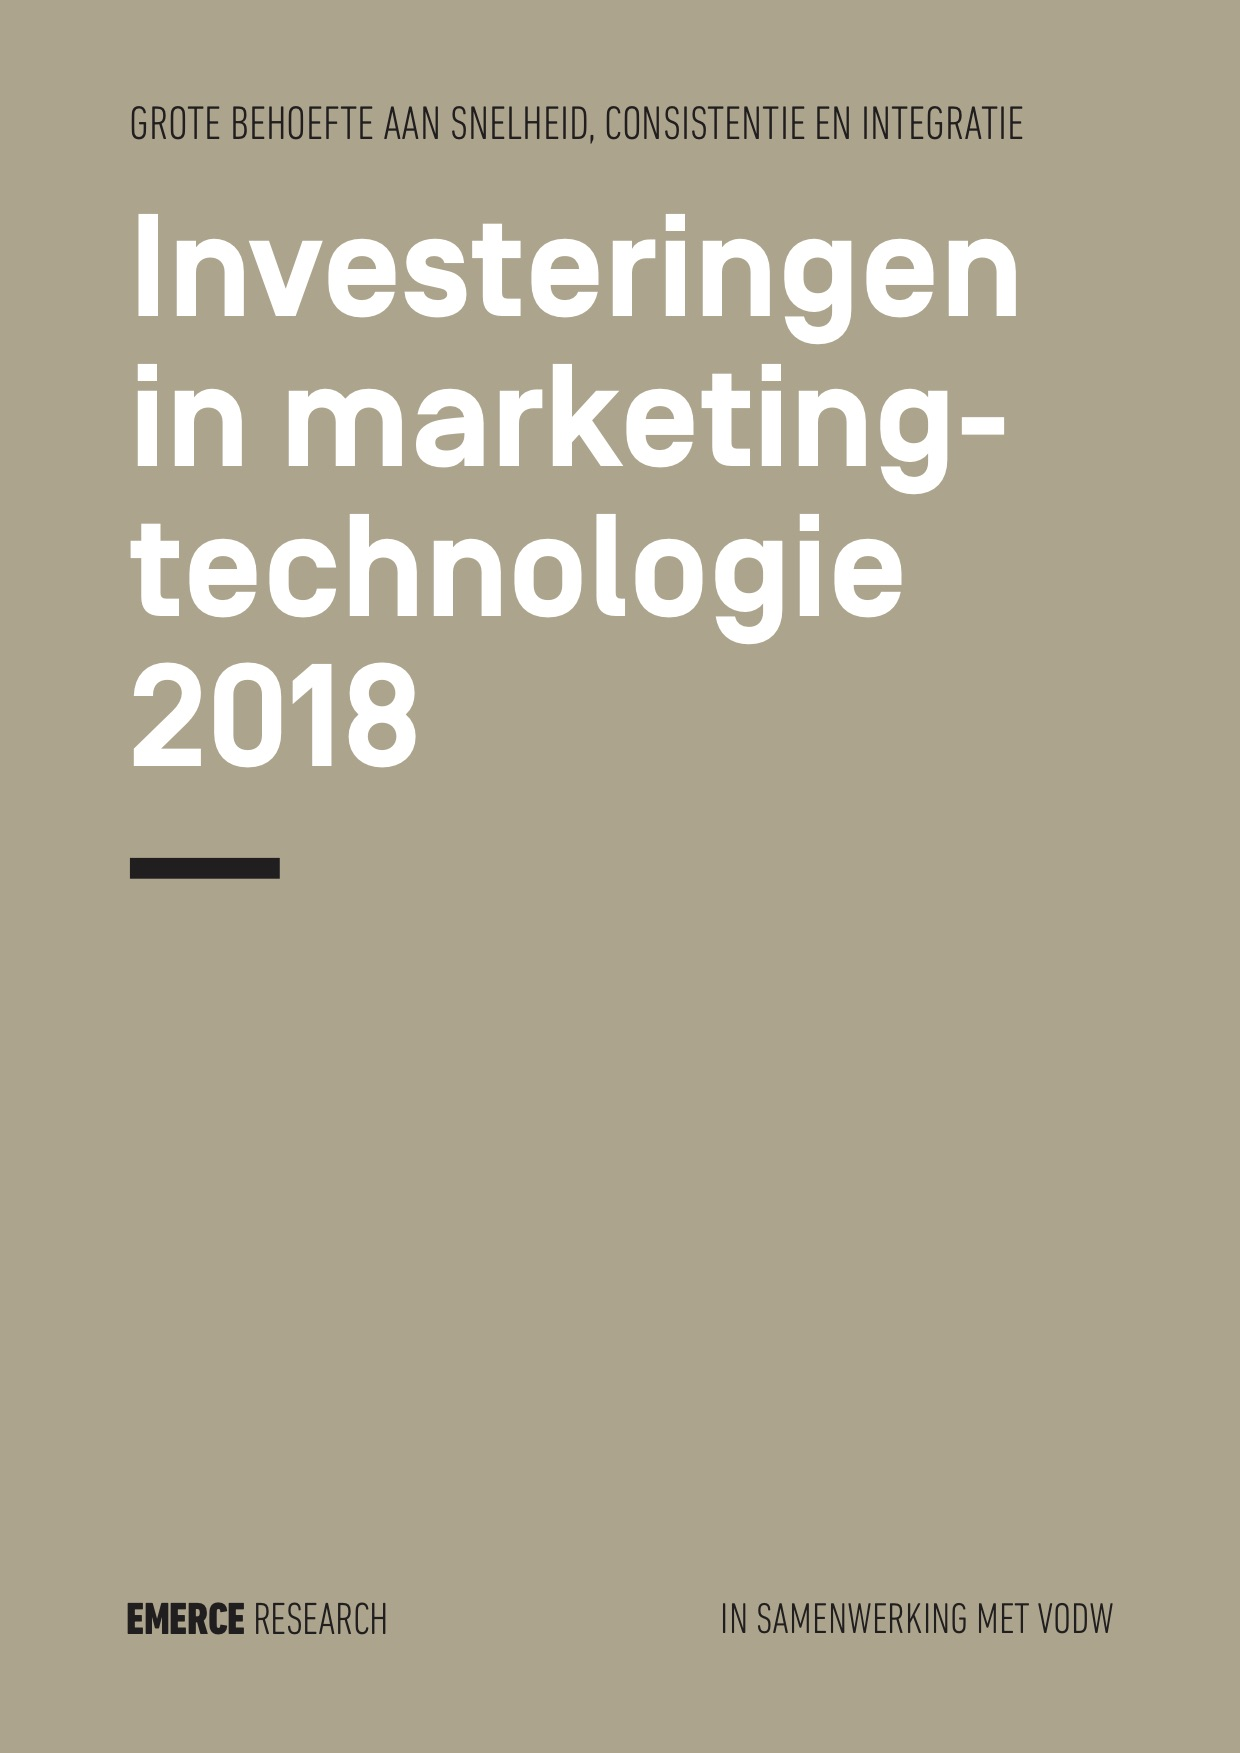 Emerce Research: Marketingtechnologie binnen Nederlandse organisaties 2018